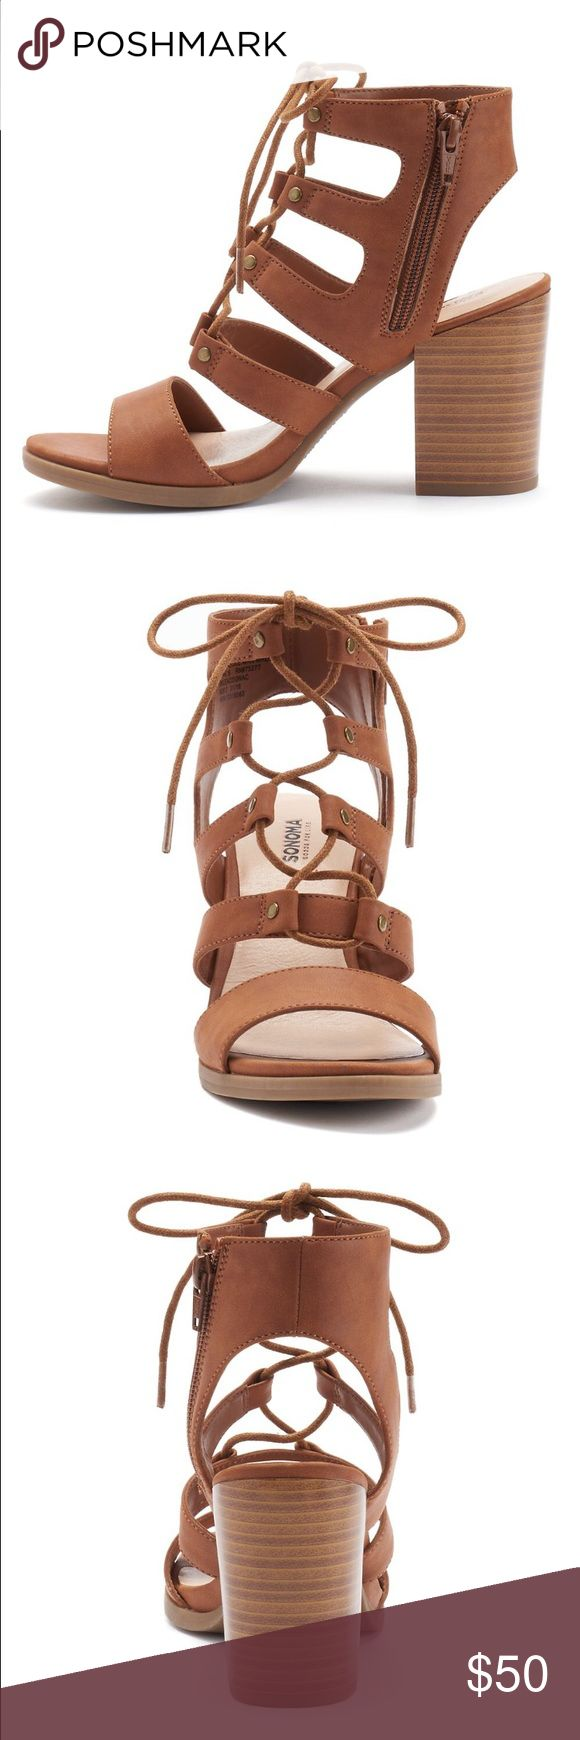 Brown Heel Sandals No trades. Will be shipping with original box. Sonoma Shoes Heels